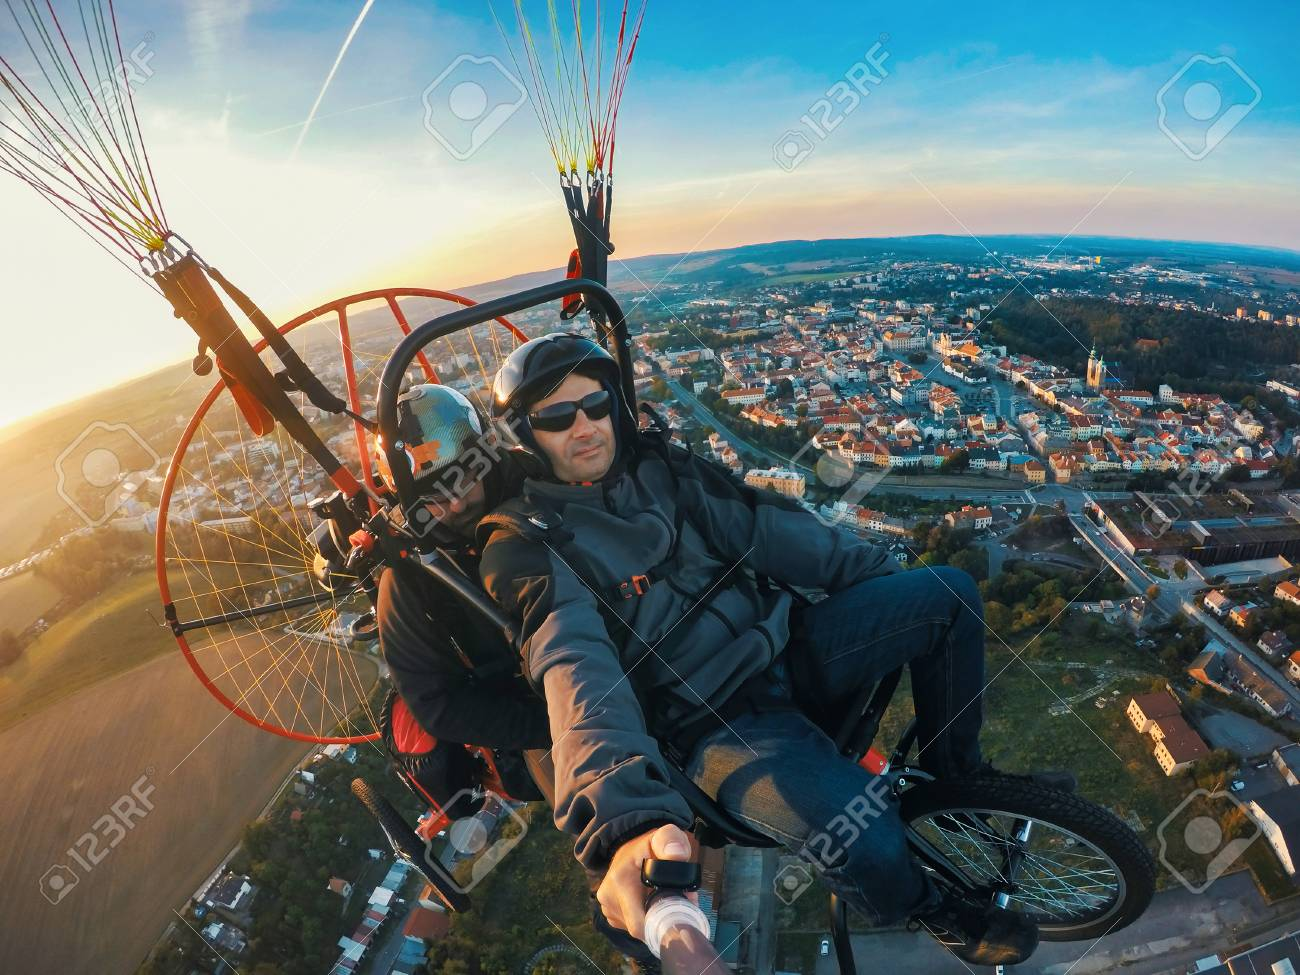 Powered paragliding tandem flight, man taking selfie with action